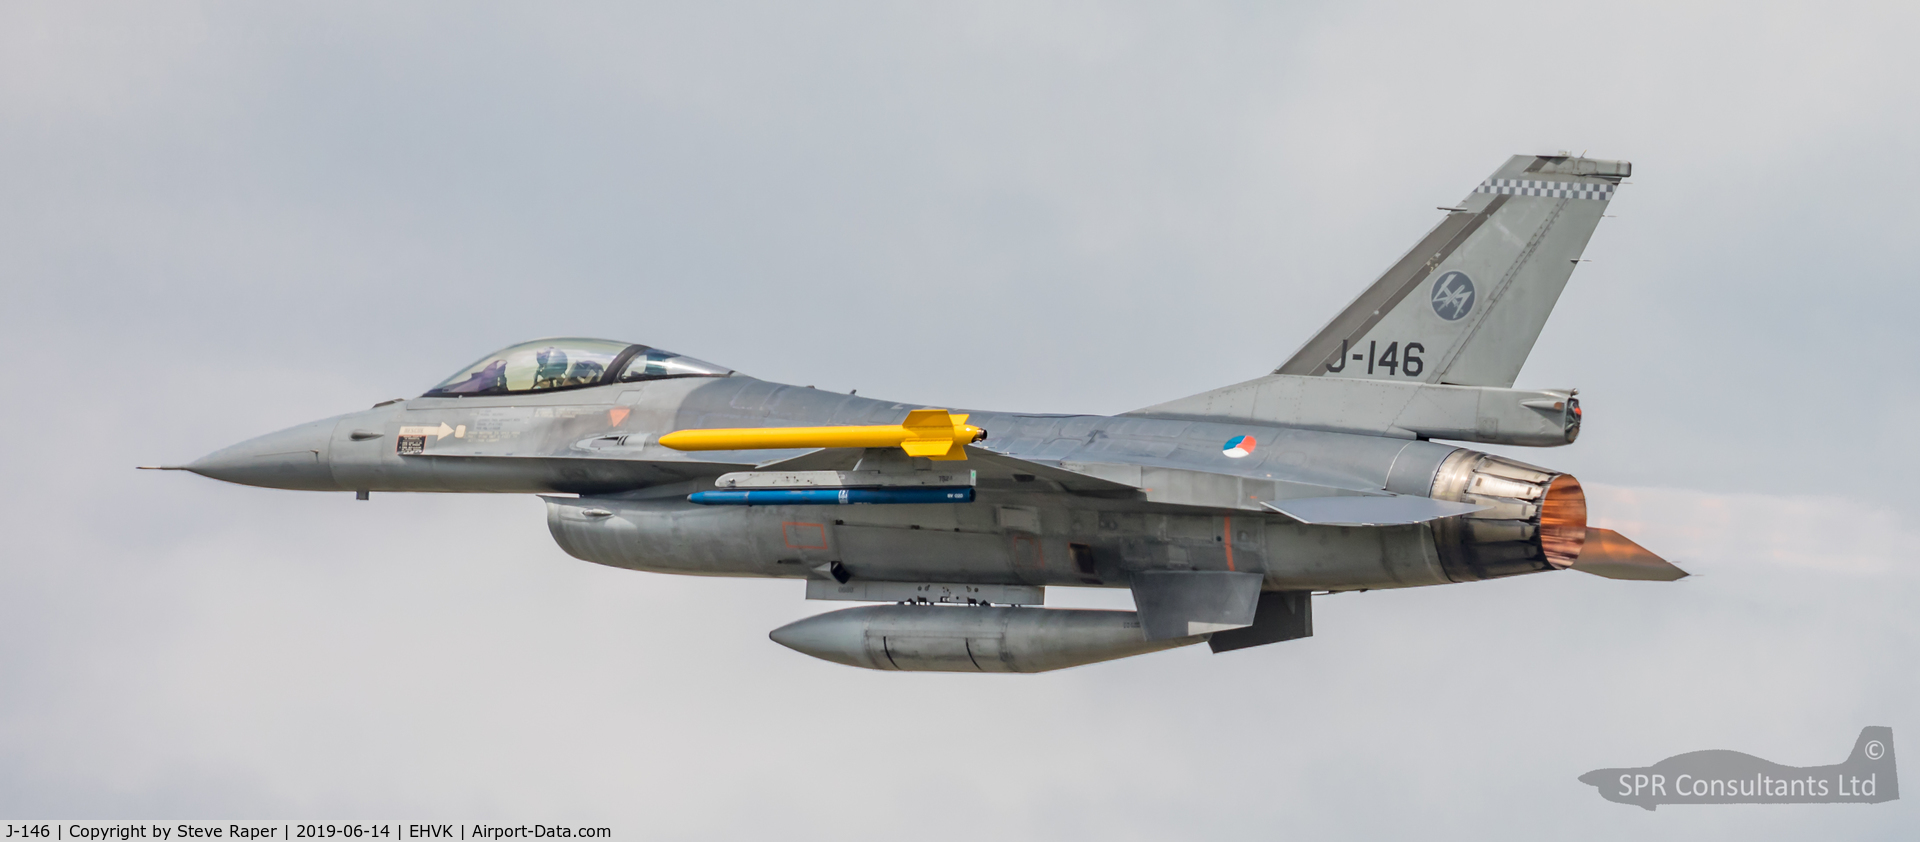 J-146, 1985 Fokker F-16AM Fighting Falcon C/N 6D-136, Royal Netherlands Air Force Base Volkel air day 14 June 2019